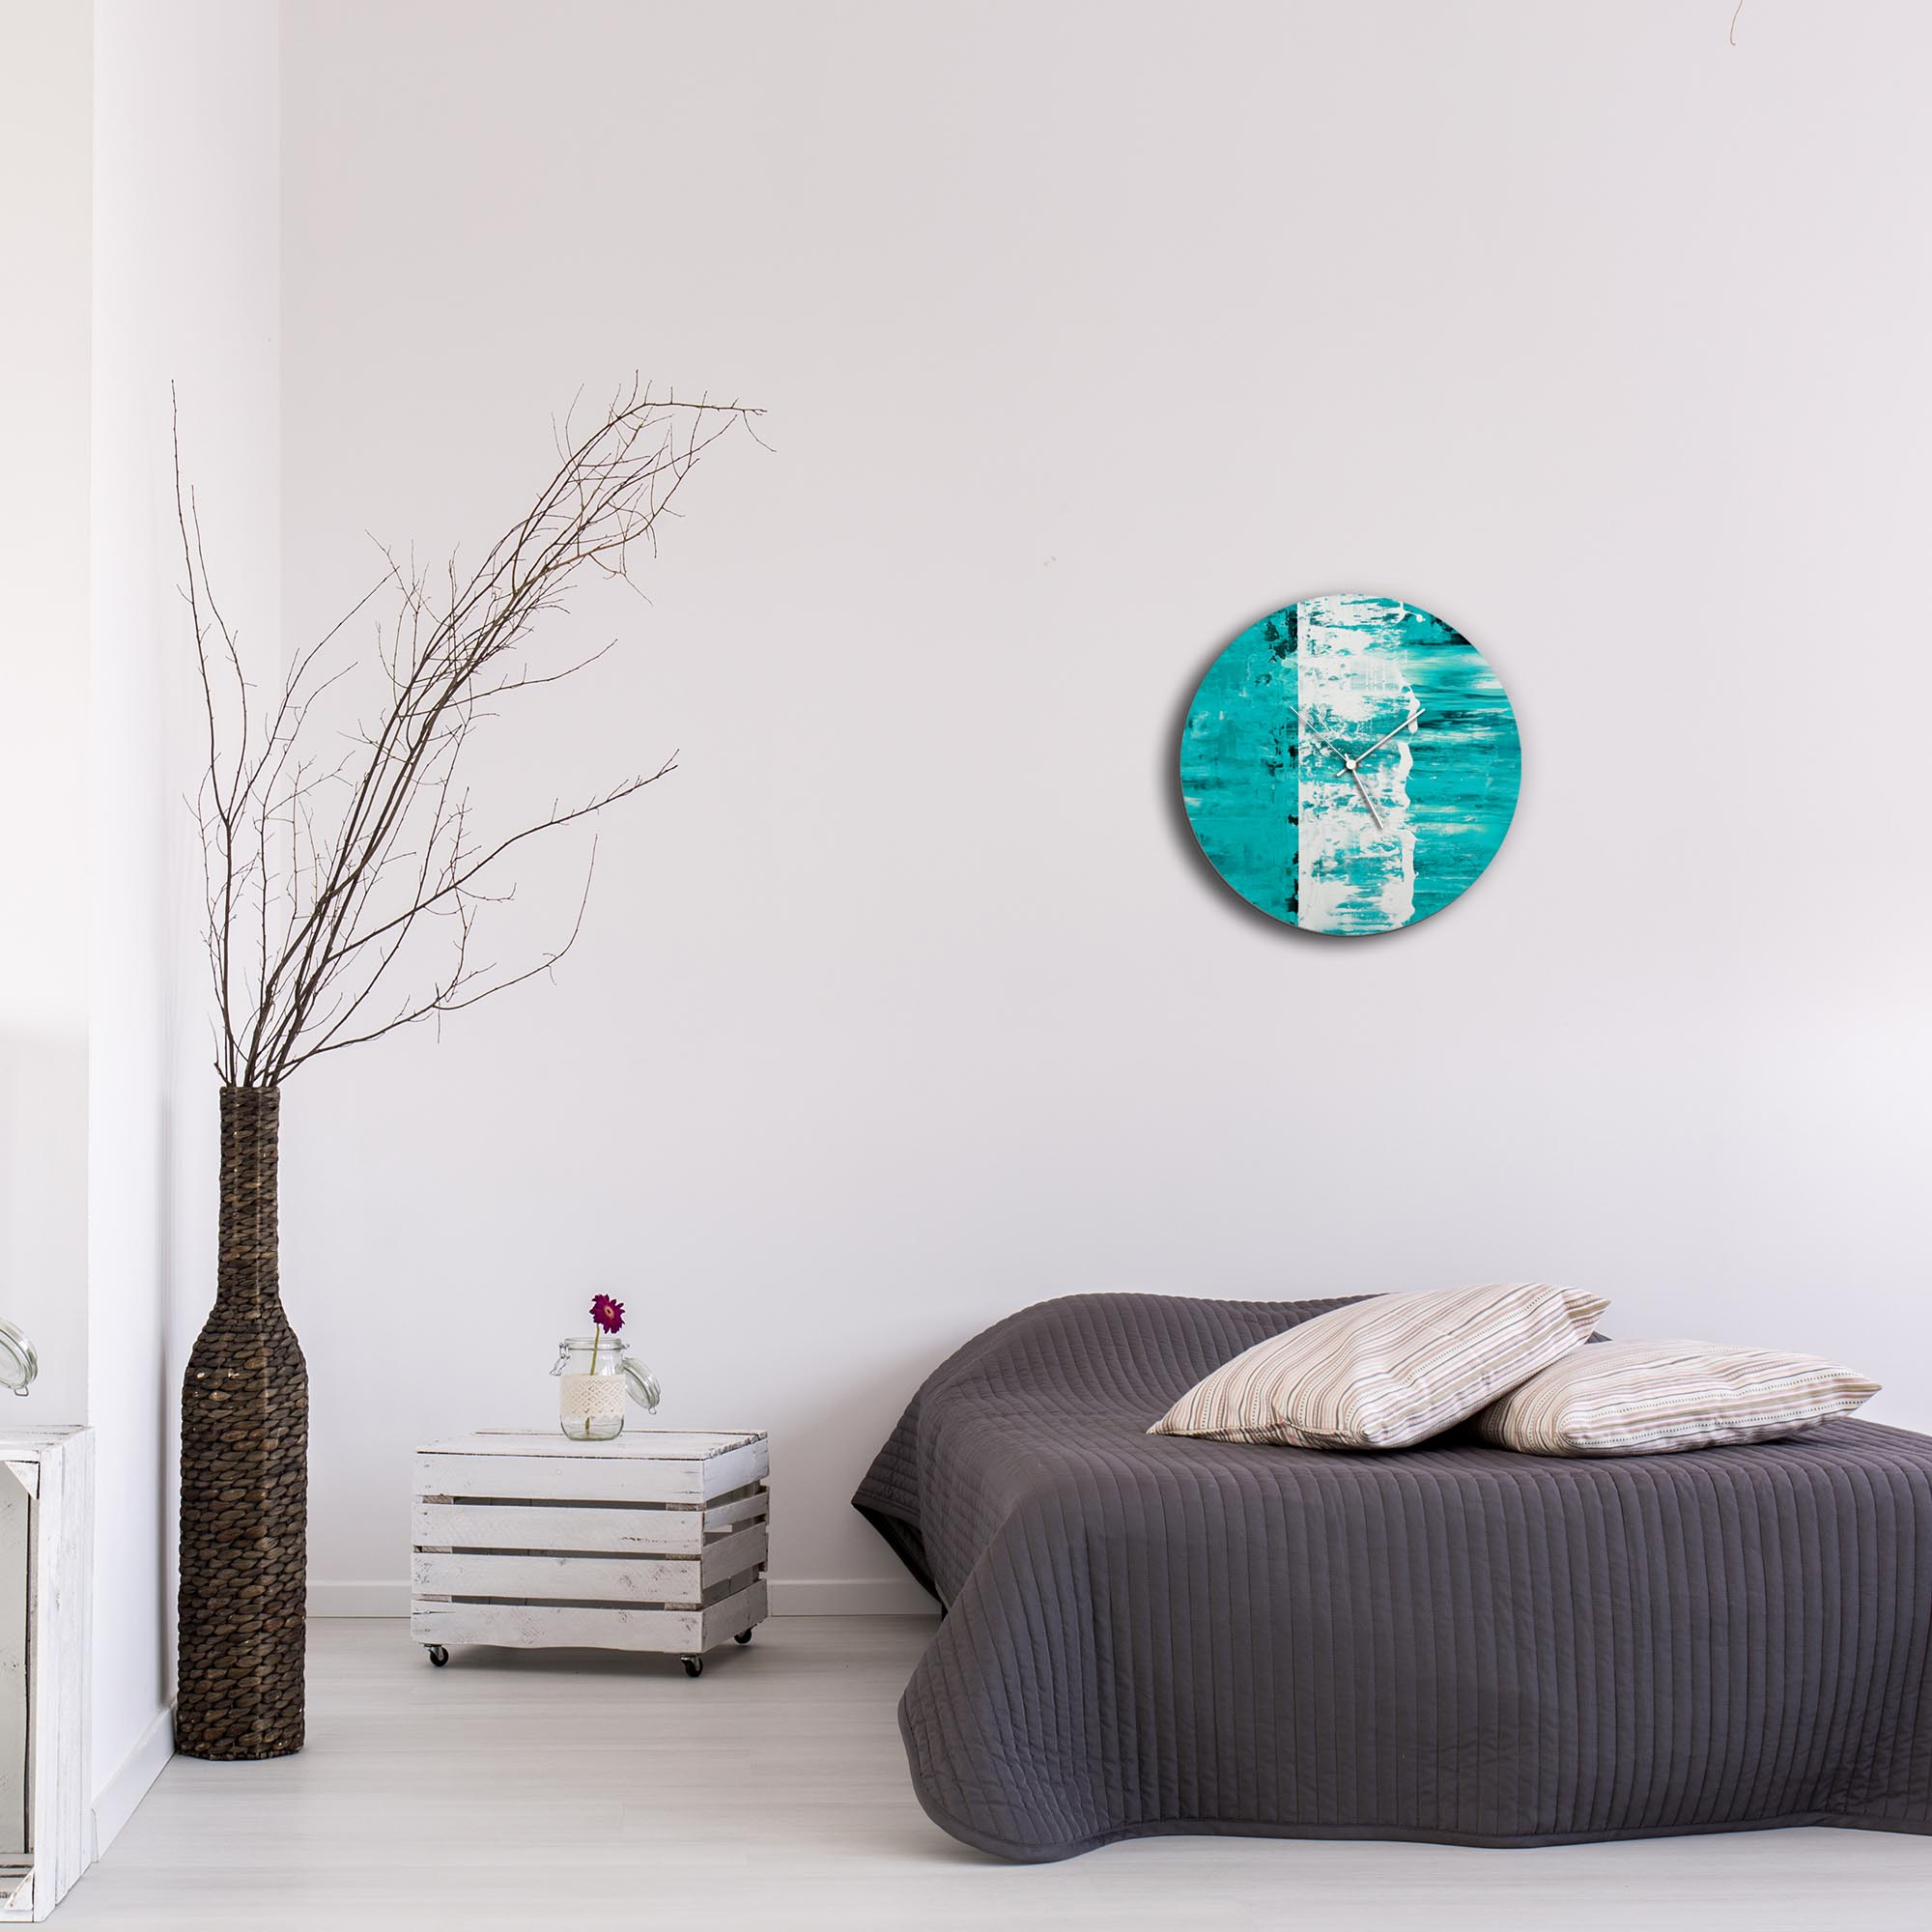 Teal Street Circle Clock by Mendo Vasilevski - Urban Abstract Home Decor - Lifestyle View